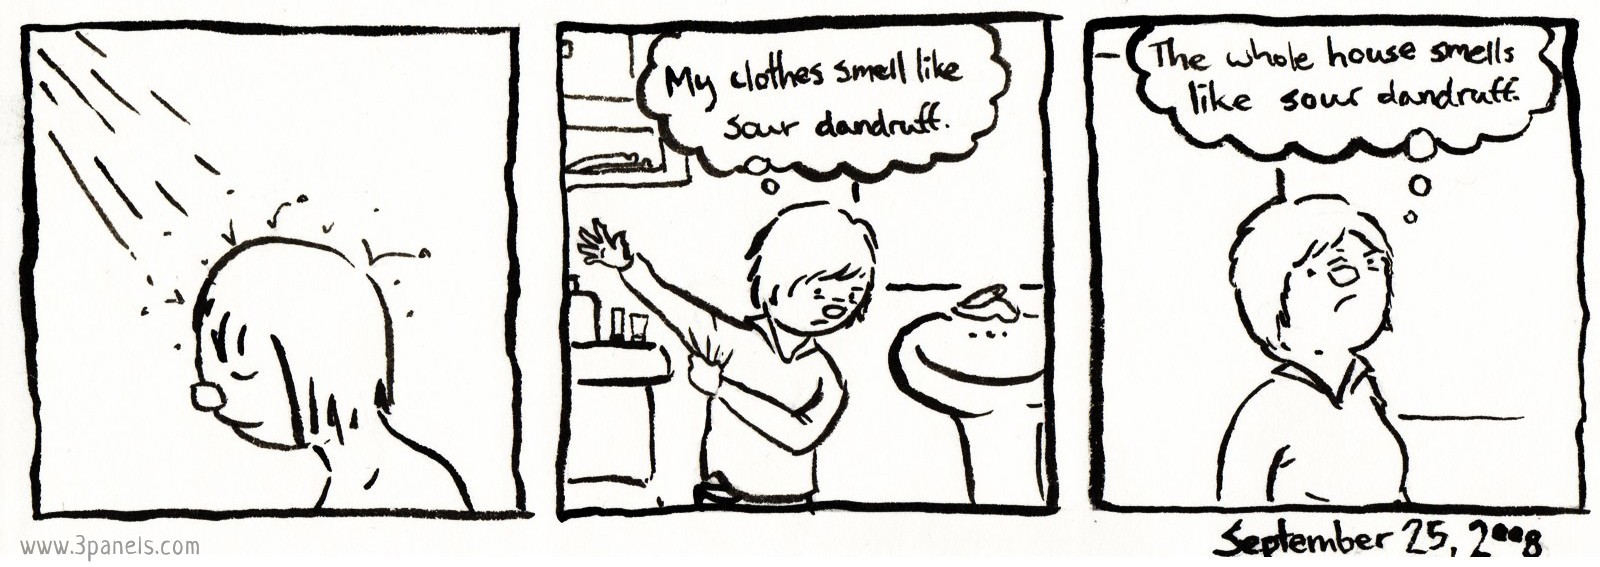 Panel 1: Dean is taking a shower. Panel 2: Dean is out of the shower, putting on their clothes. They think to themself: My clothes smell like sour dandruff. Panel 3: Dean looks up, sniffing the air. They think: The whole house smells like sour dandruff.